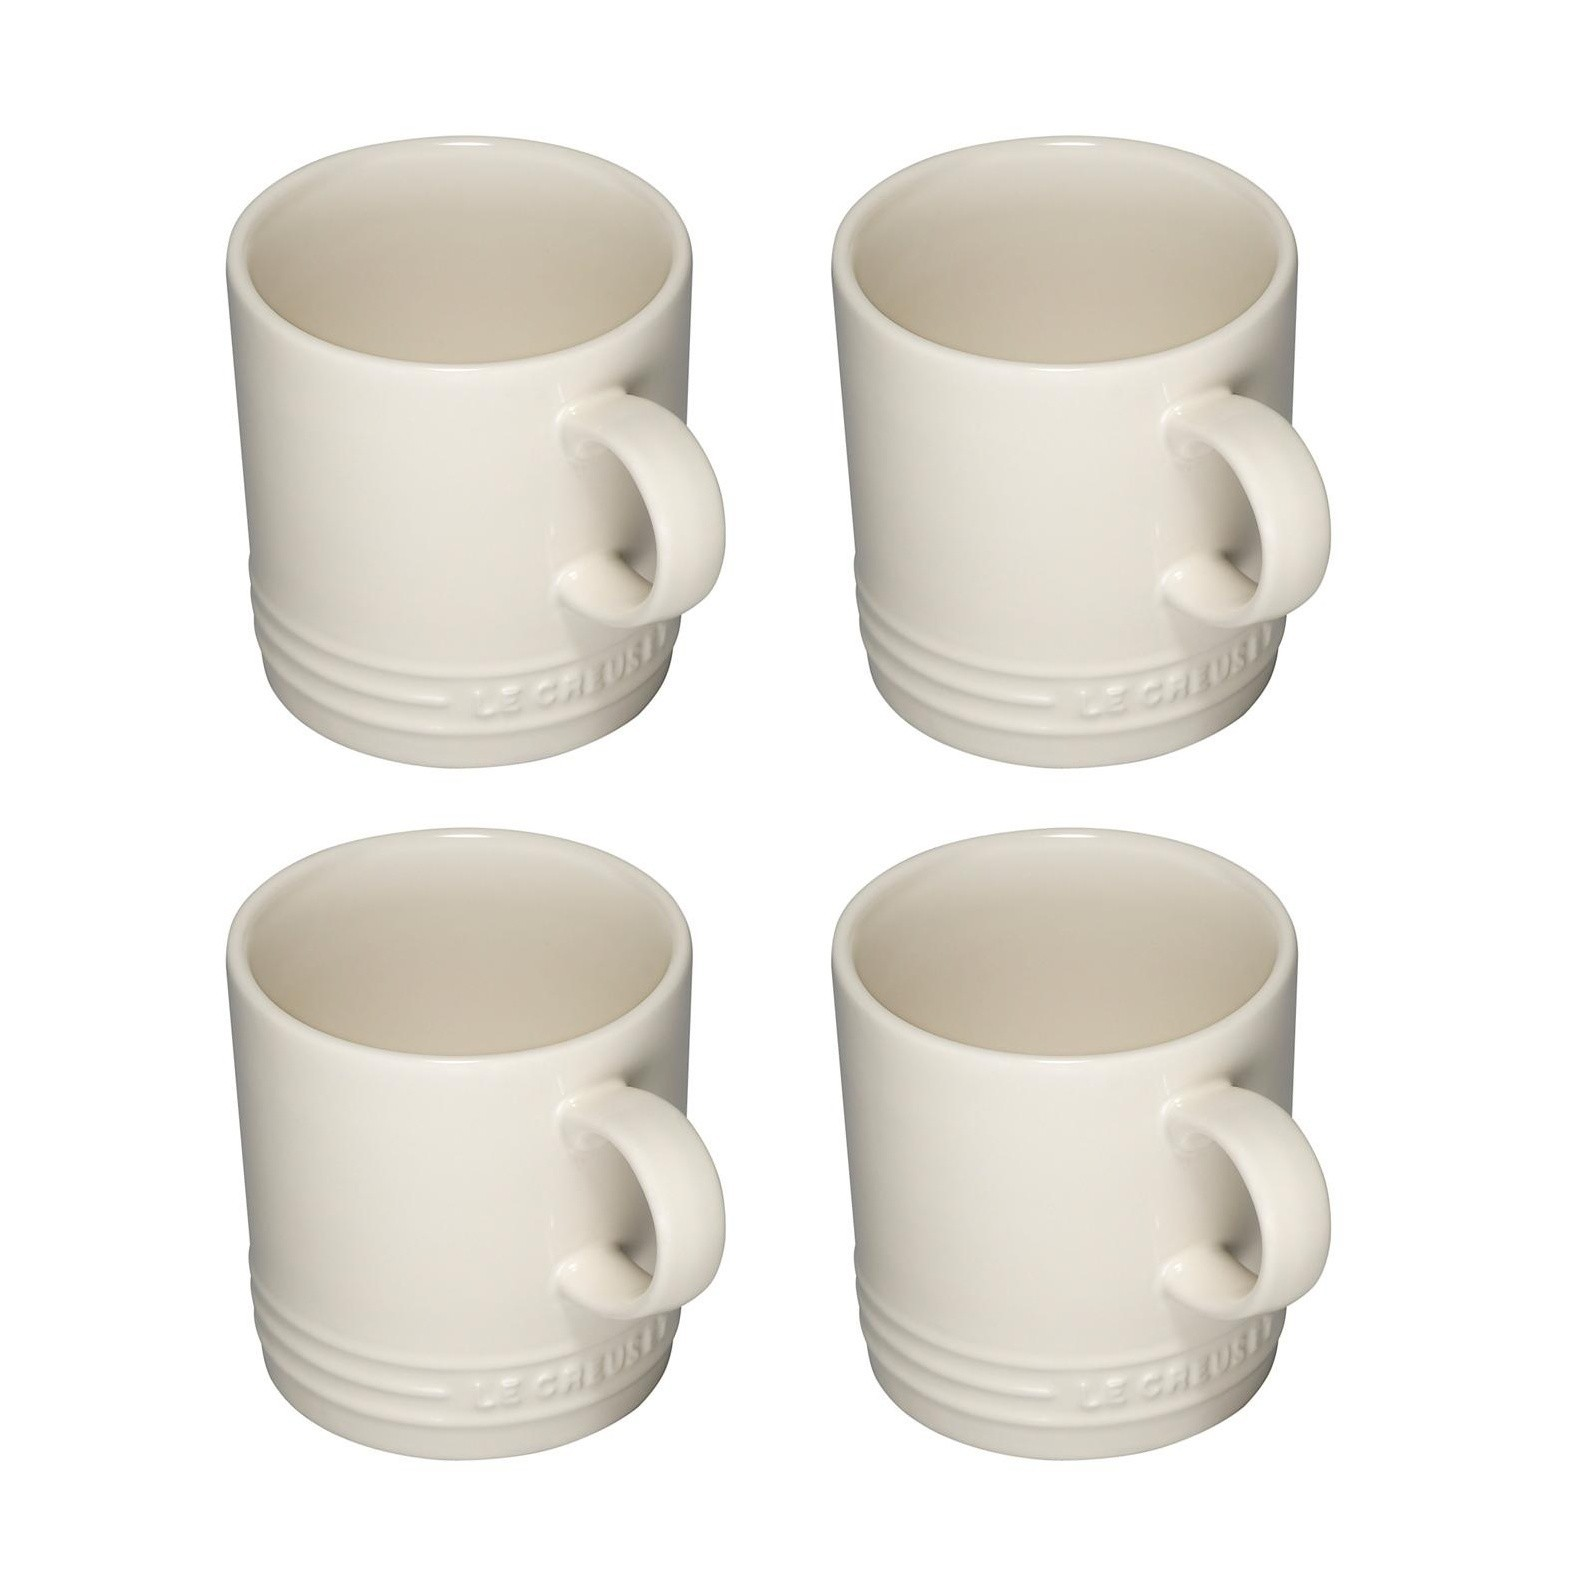 Le Creuset Mug Set Of 4 0 35l Creme Suitable For